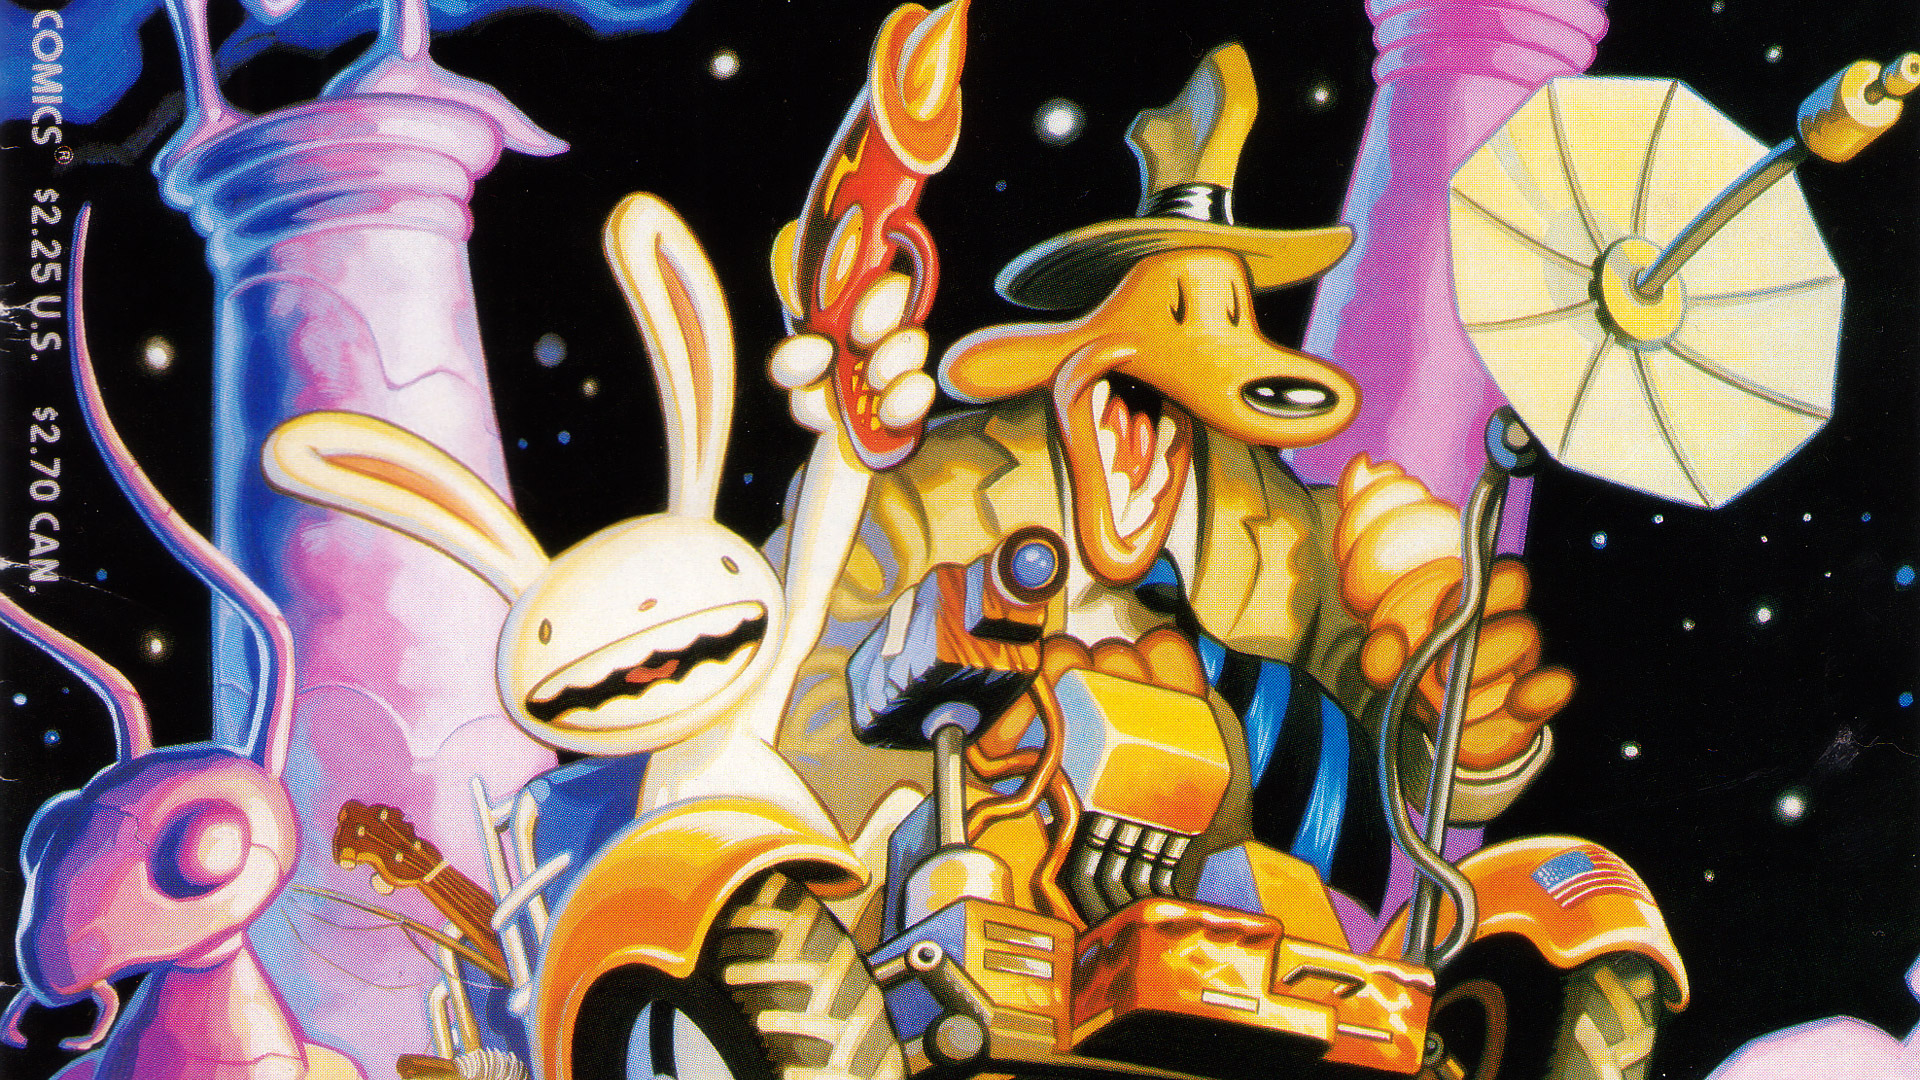 Free Sam and Max Wallpaper in 1920x1080